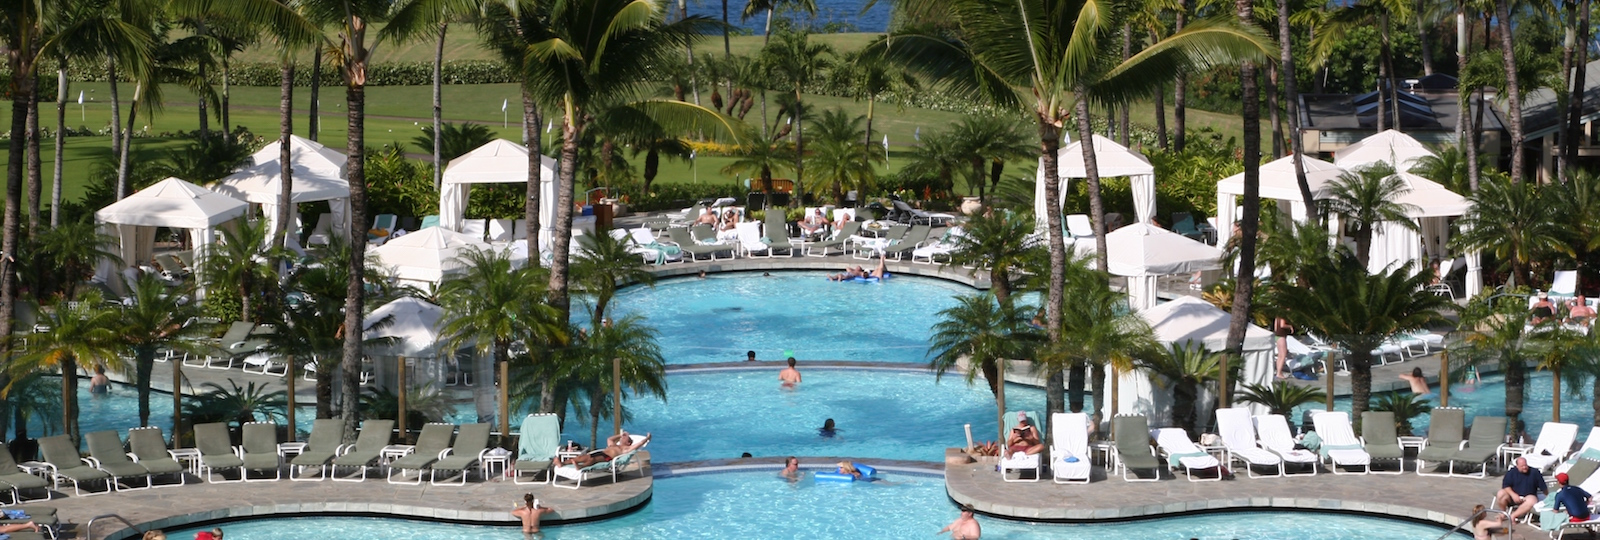 Maui Is One Of The Most Por Destination Islands In World It S Beautiful And Has A Lifestyle Everyone Wants To Be Part